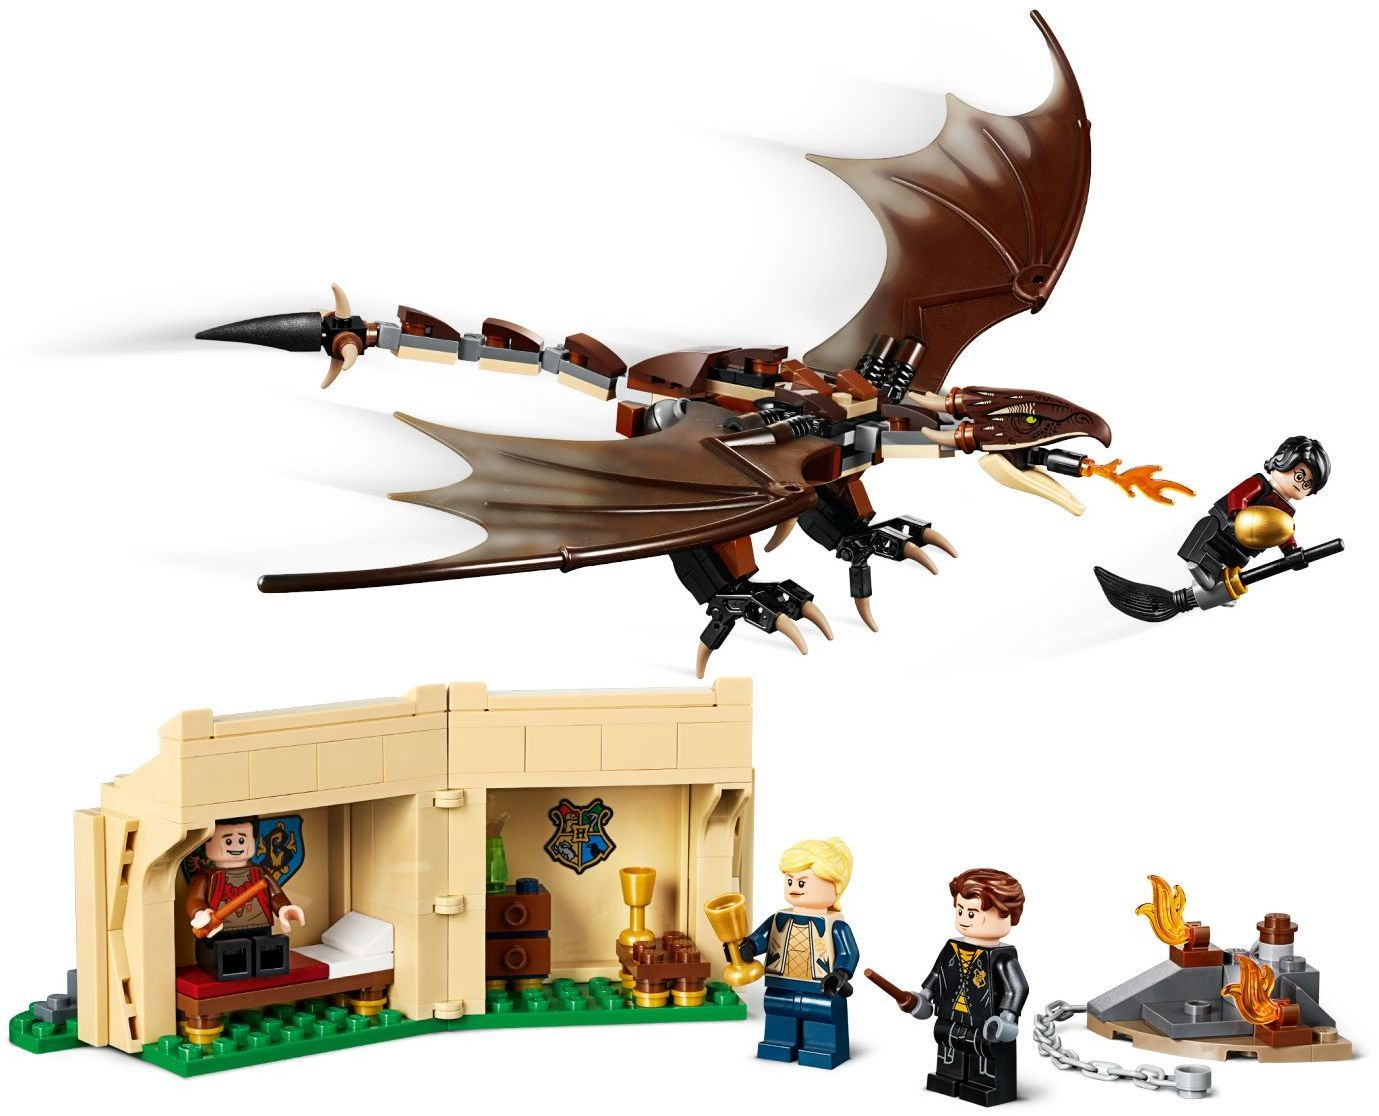 LEGO Harry Potter - Hungarian Horntail Triwizard Challenge (75946) image